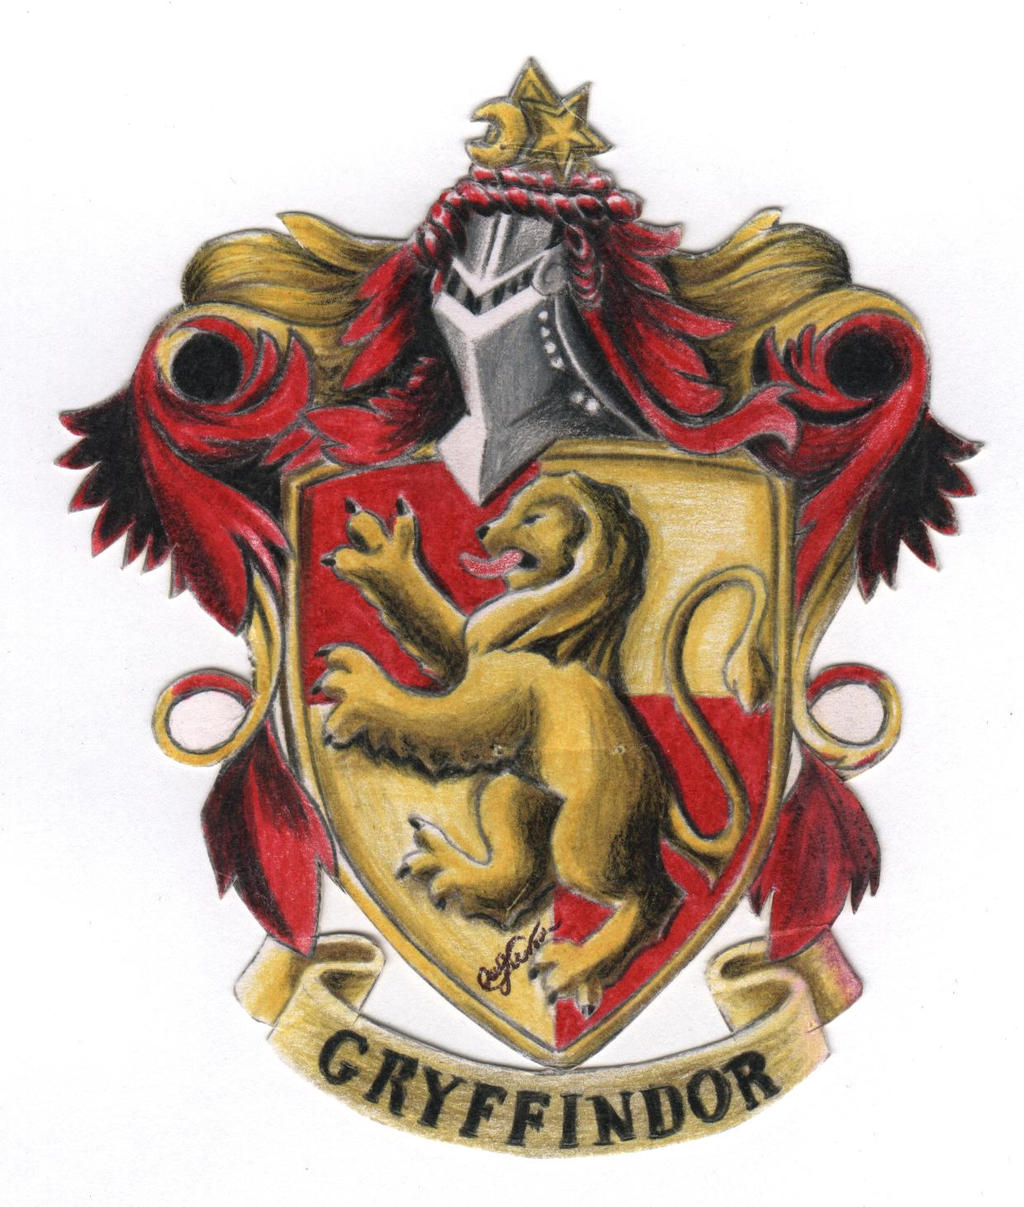 an analysis of the painting of the gryffindor crest Gryffindor house crest wall art measures 8 x 11.